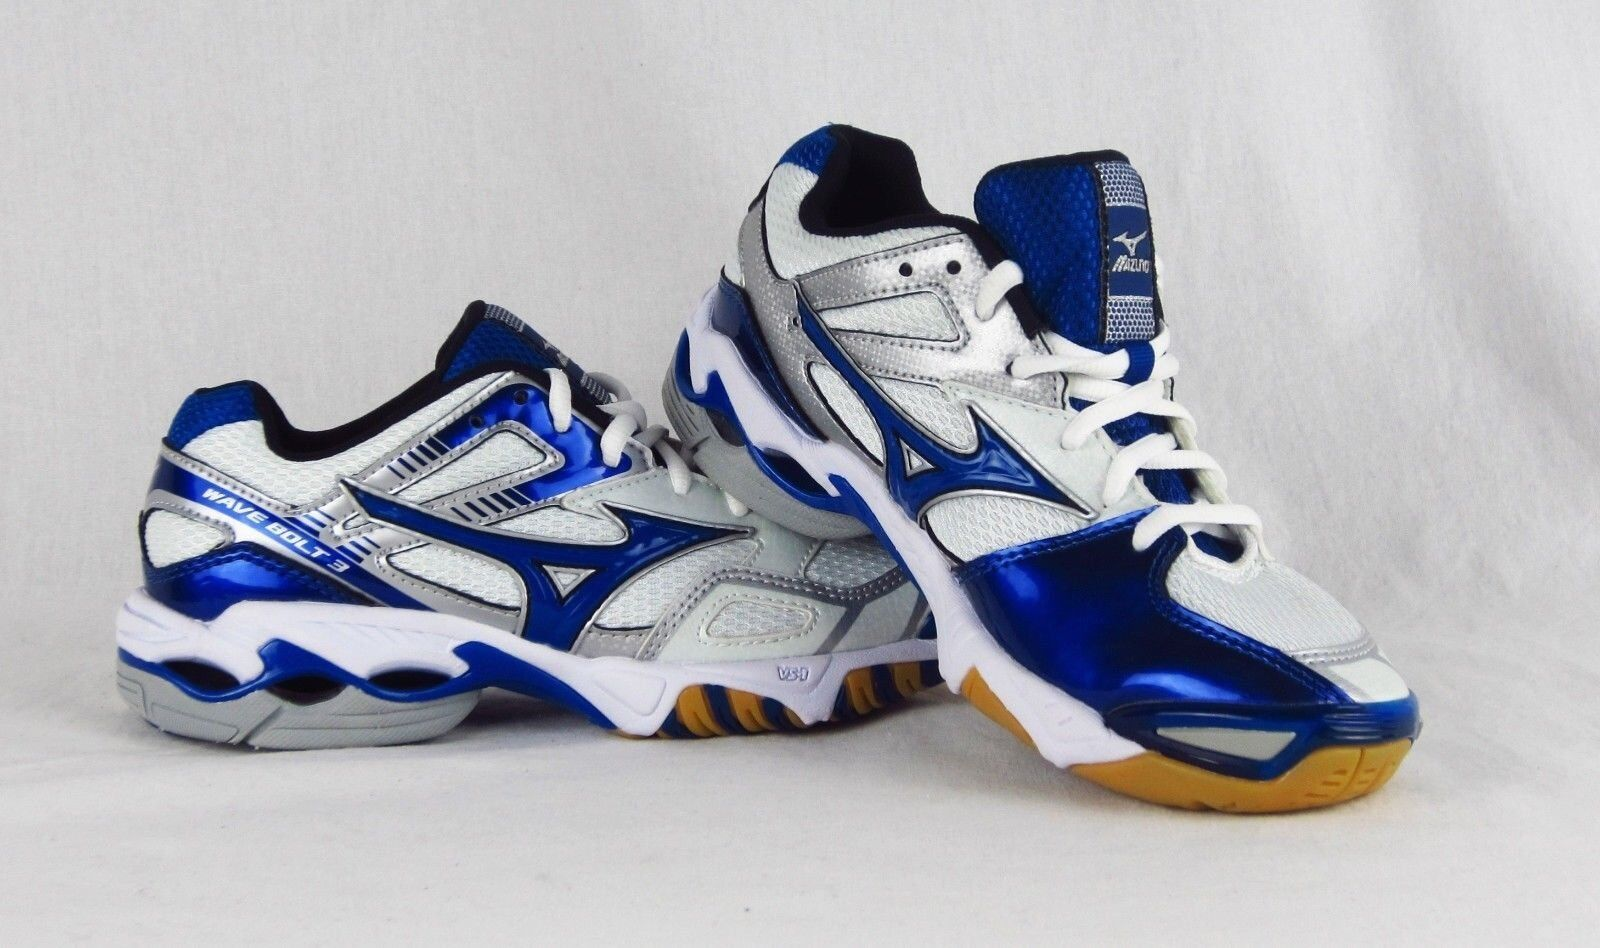 New Womens Mizuno Wave Bolt 3 Volleyball shoes Sneaker Royal bluee White 11 Wide